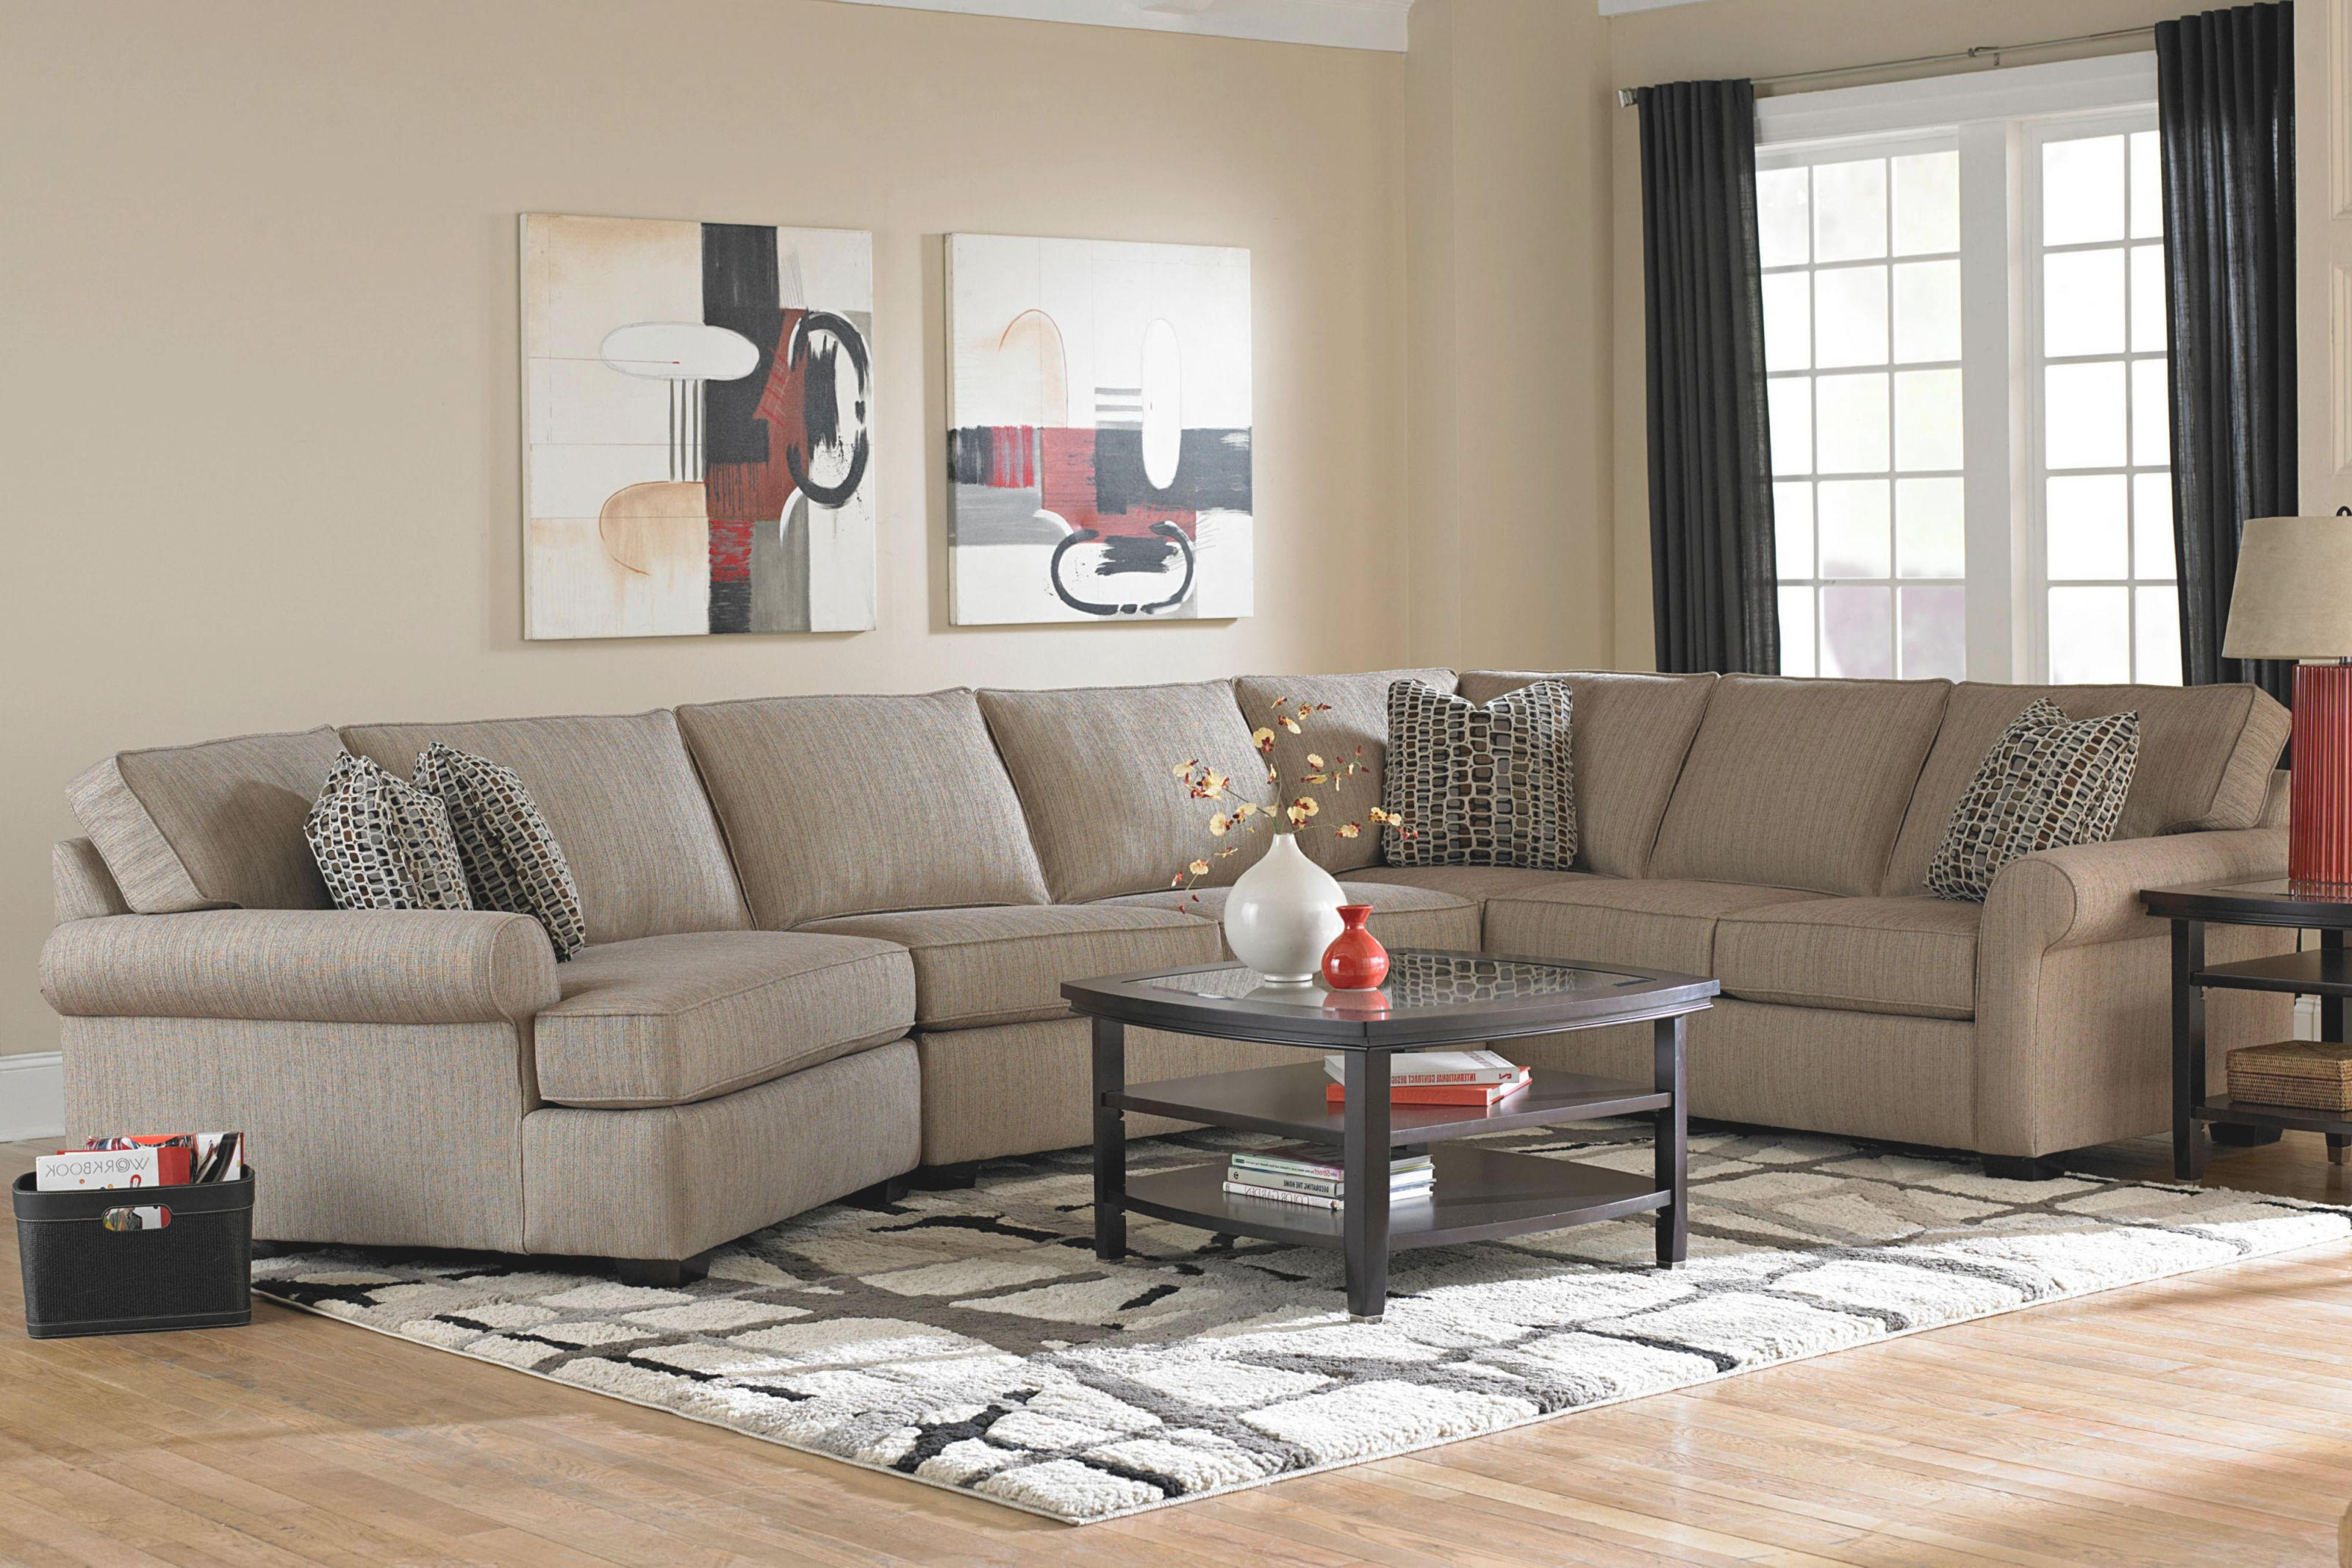 Kitchen Design : Raymour And Flanigan Living Room Sets with Raymour And Flanigan Living Room Sets